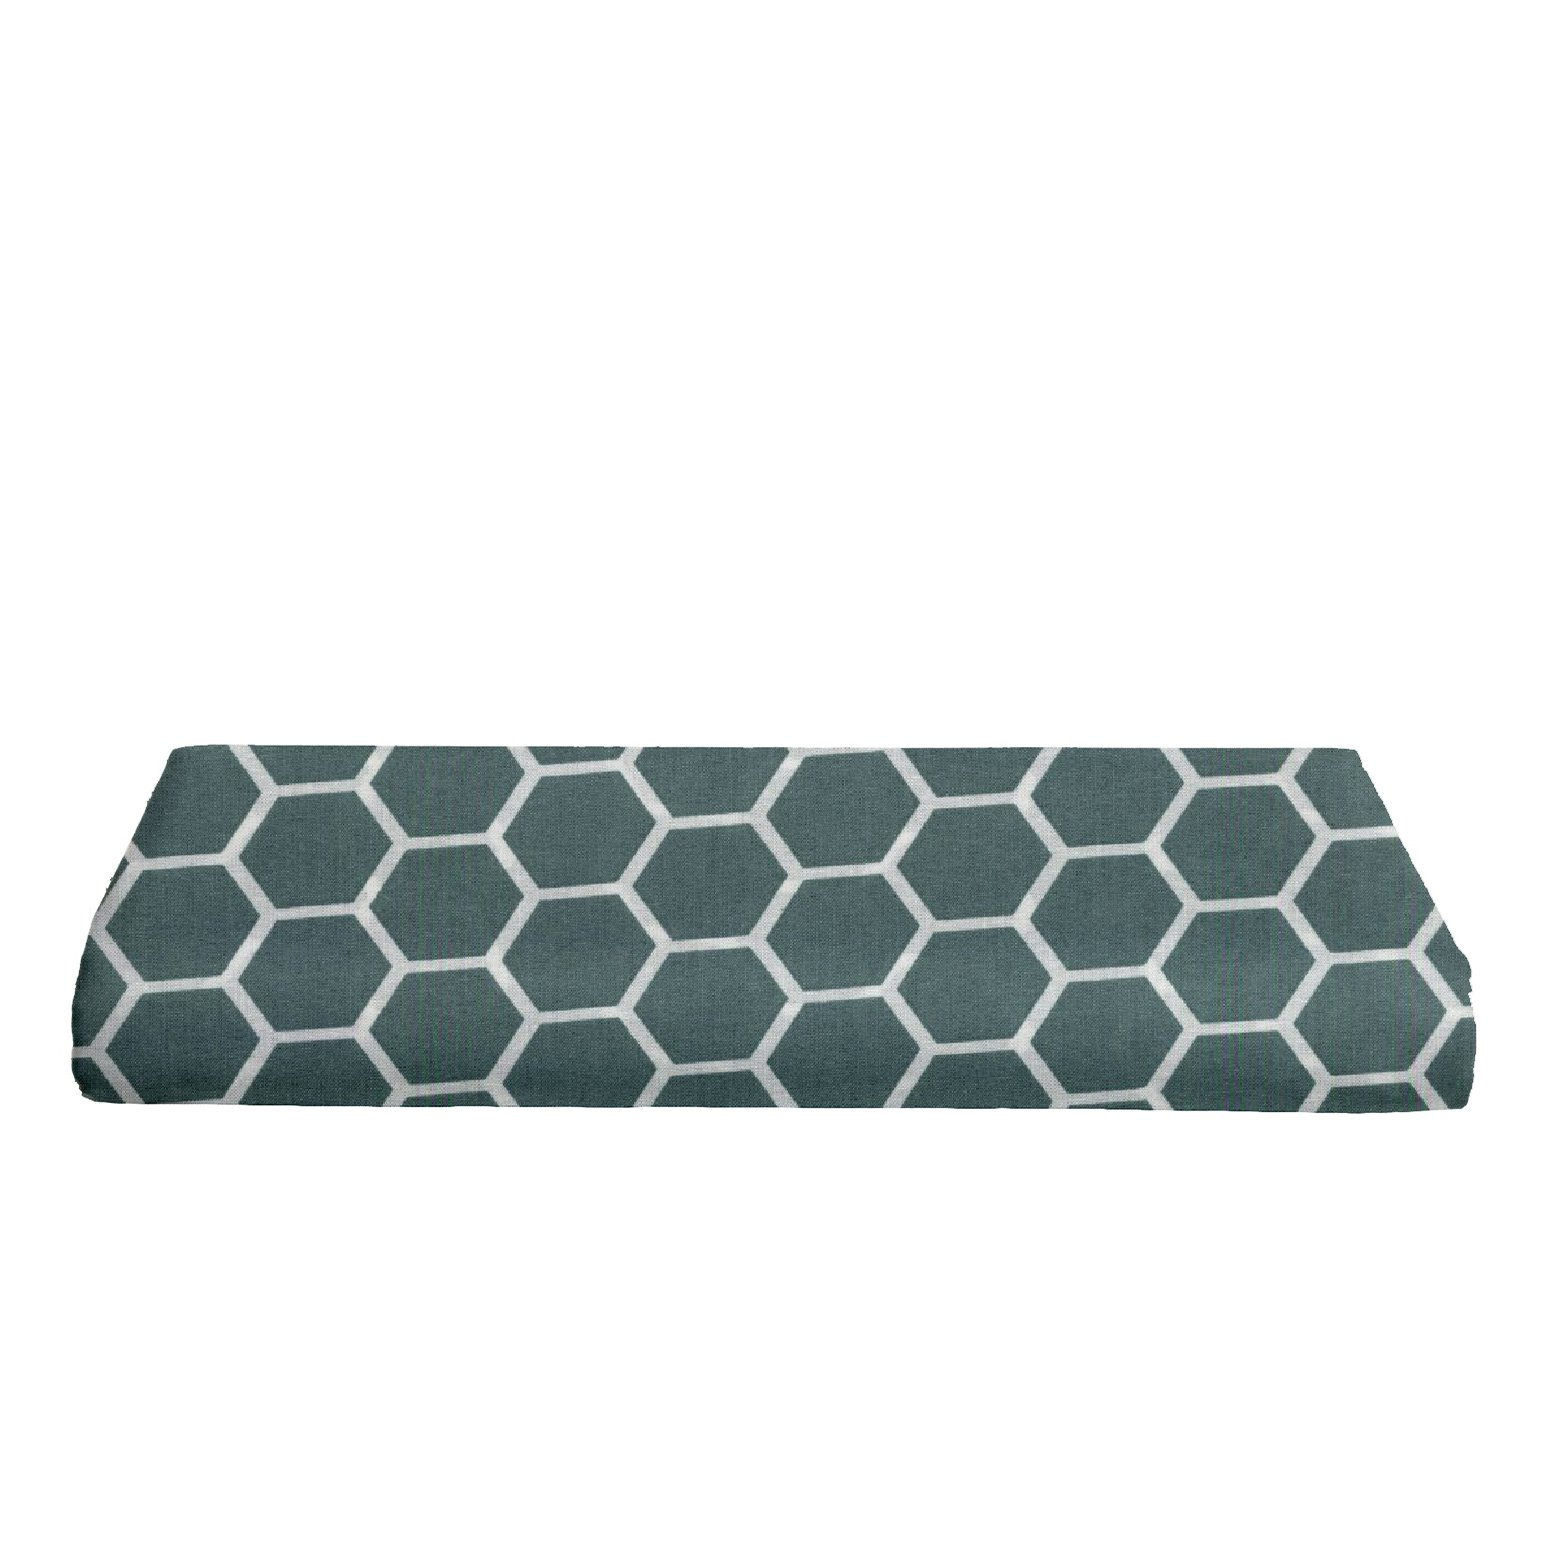 BKB Changing Pad Cover, Honeycomb Spa Blue